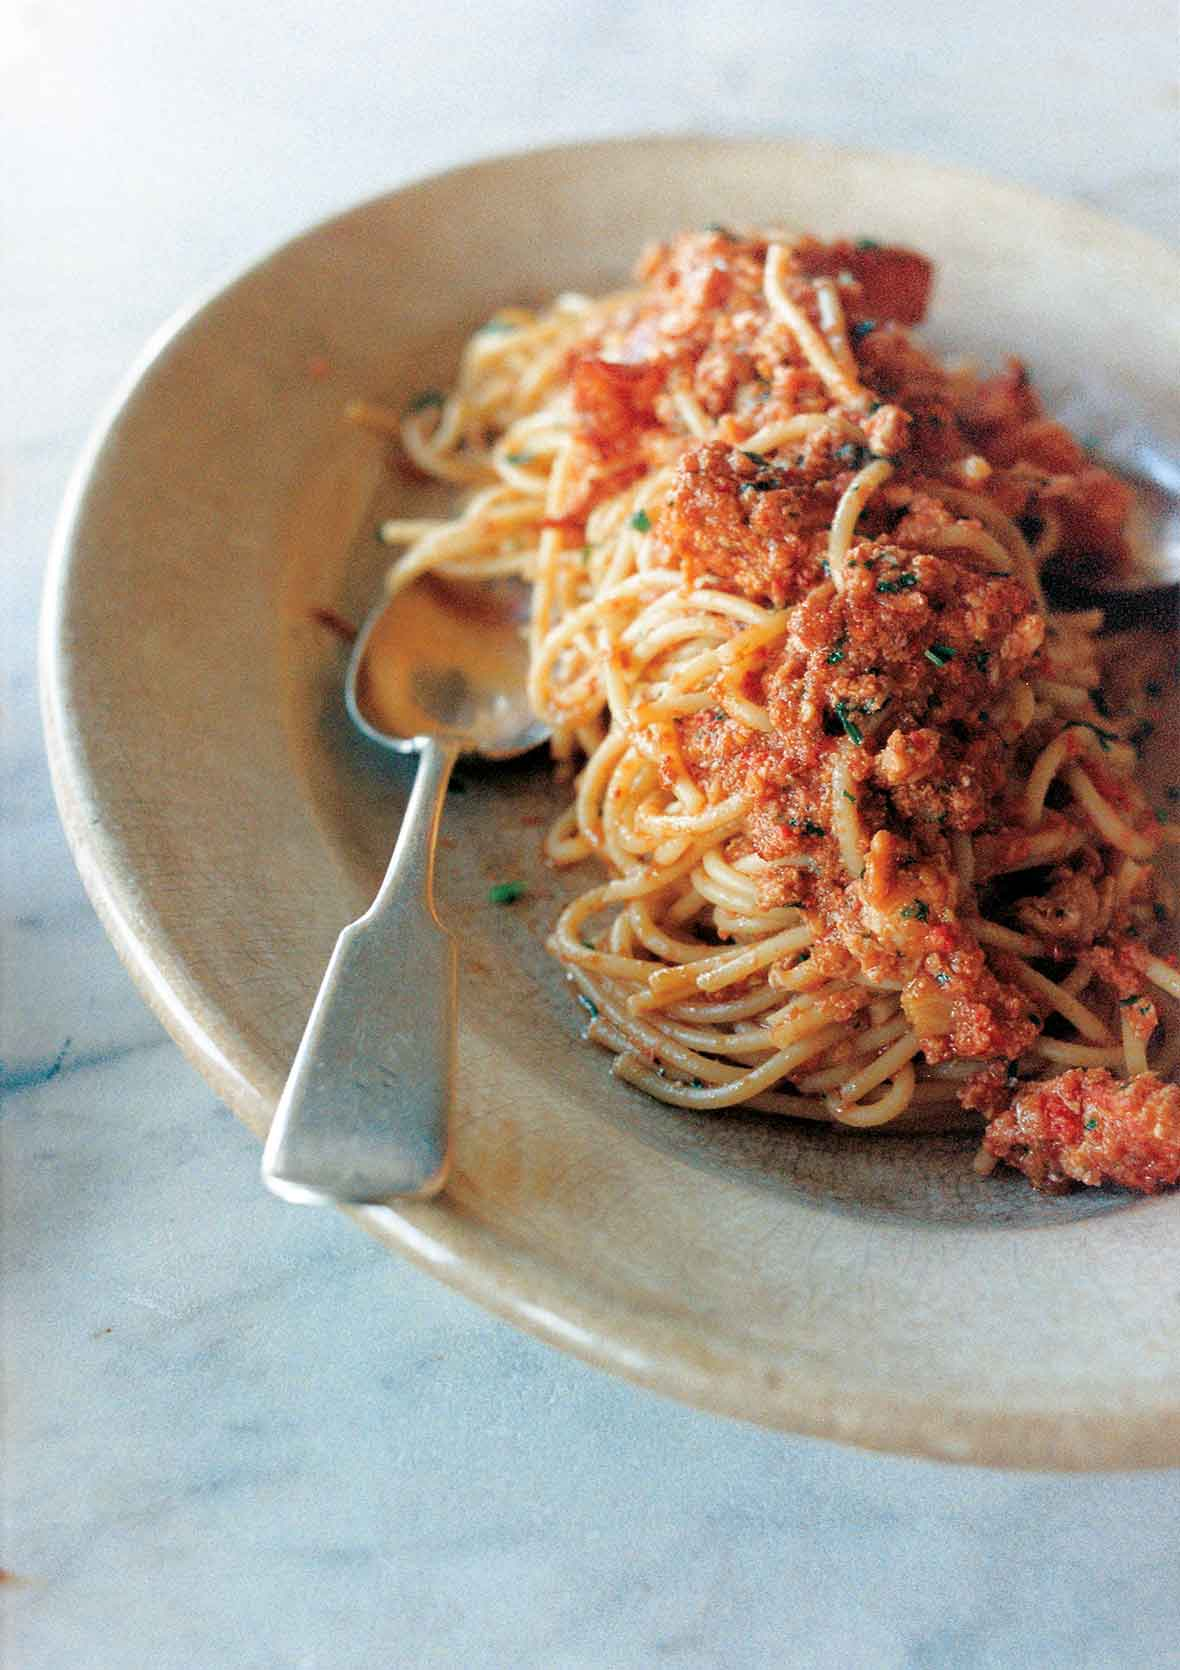 A serving of lobster fra diavolo in an oval bowl with a spoon resting inside.